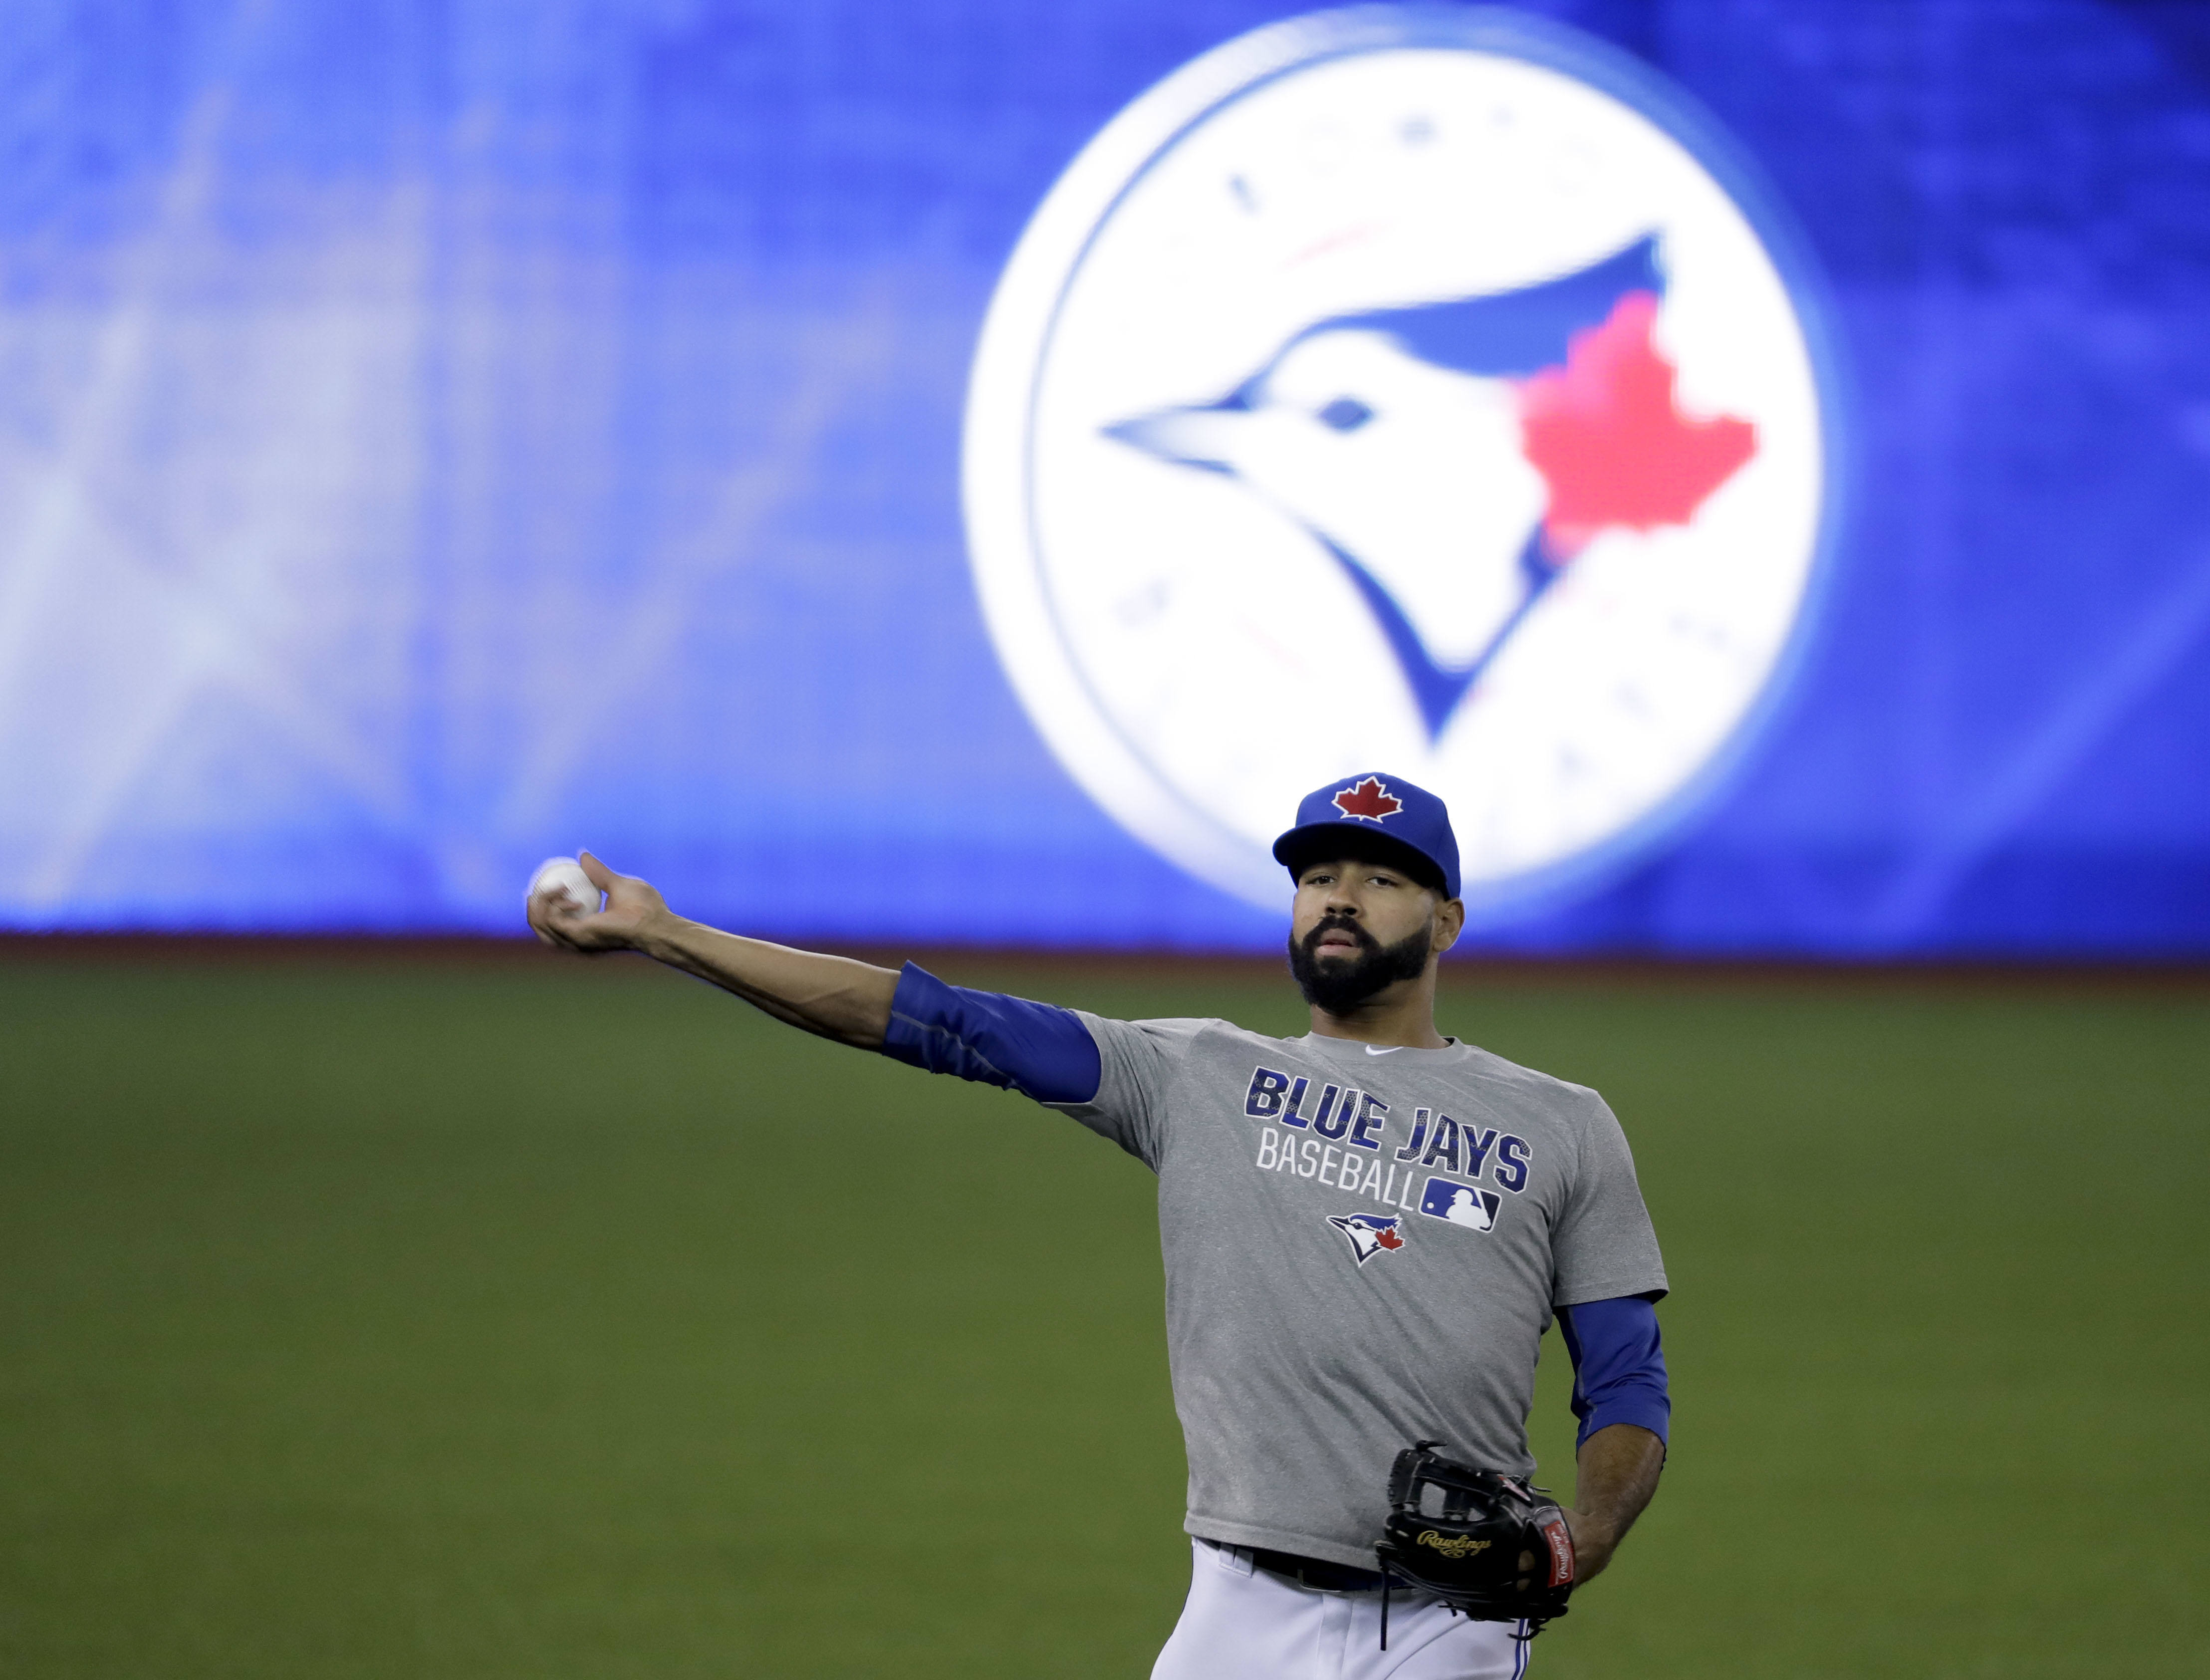 Toronto Blue Jays right fielder Jose Bautista warms up before Game 3 of baseball's American League Championship Series against the Cleveland Indians in Toronto, Monday, Oct. 17, 2016. (AP Photo/Charlie Riedel)